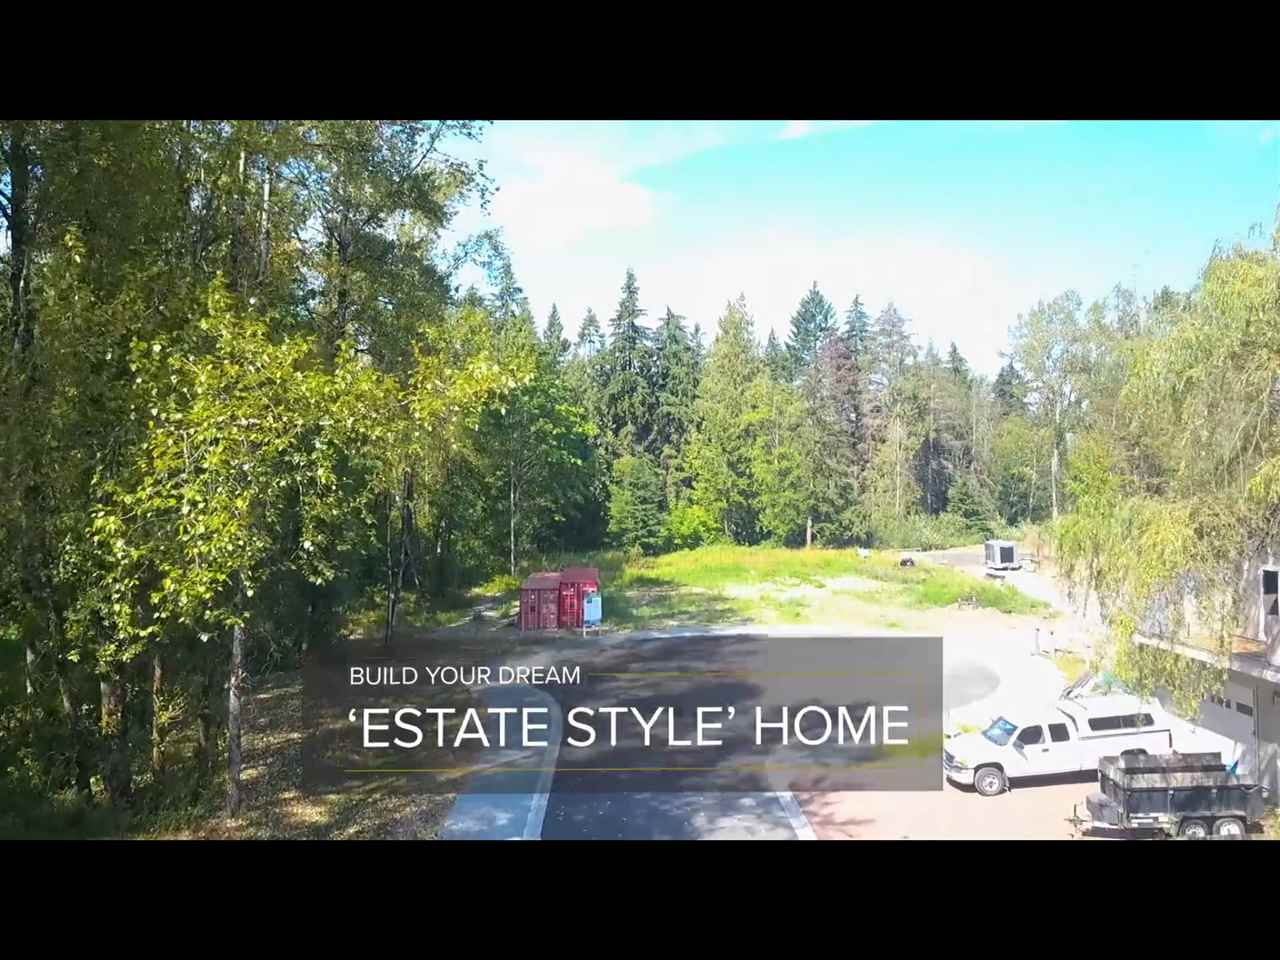 Brand new fully subdivided lot in desirable Salmon River, ready for your dream estate style home. Extremely convenient location just mins to 232nd and #1 freeway. Protected by trees to the north, forest/TWU land to the west and ALR to the south, you will find a 1.73 acre site ready for your ideas. The culdsac will be shared by two other homes and is located at the end of a dead end street. Plans have been drafted for a possible 6500sqft home with room for a detached shop.